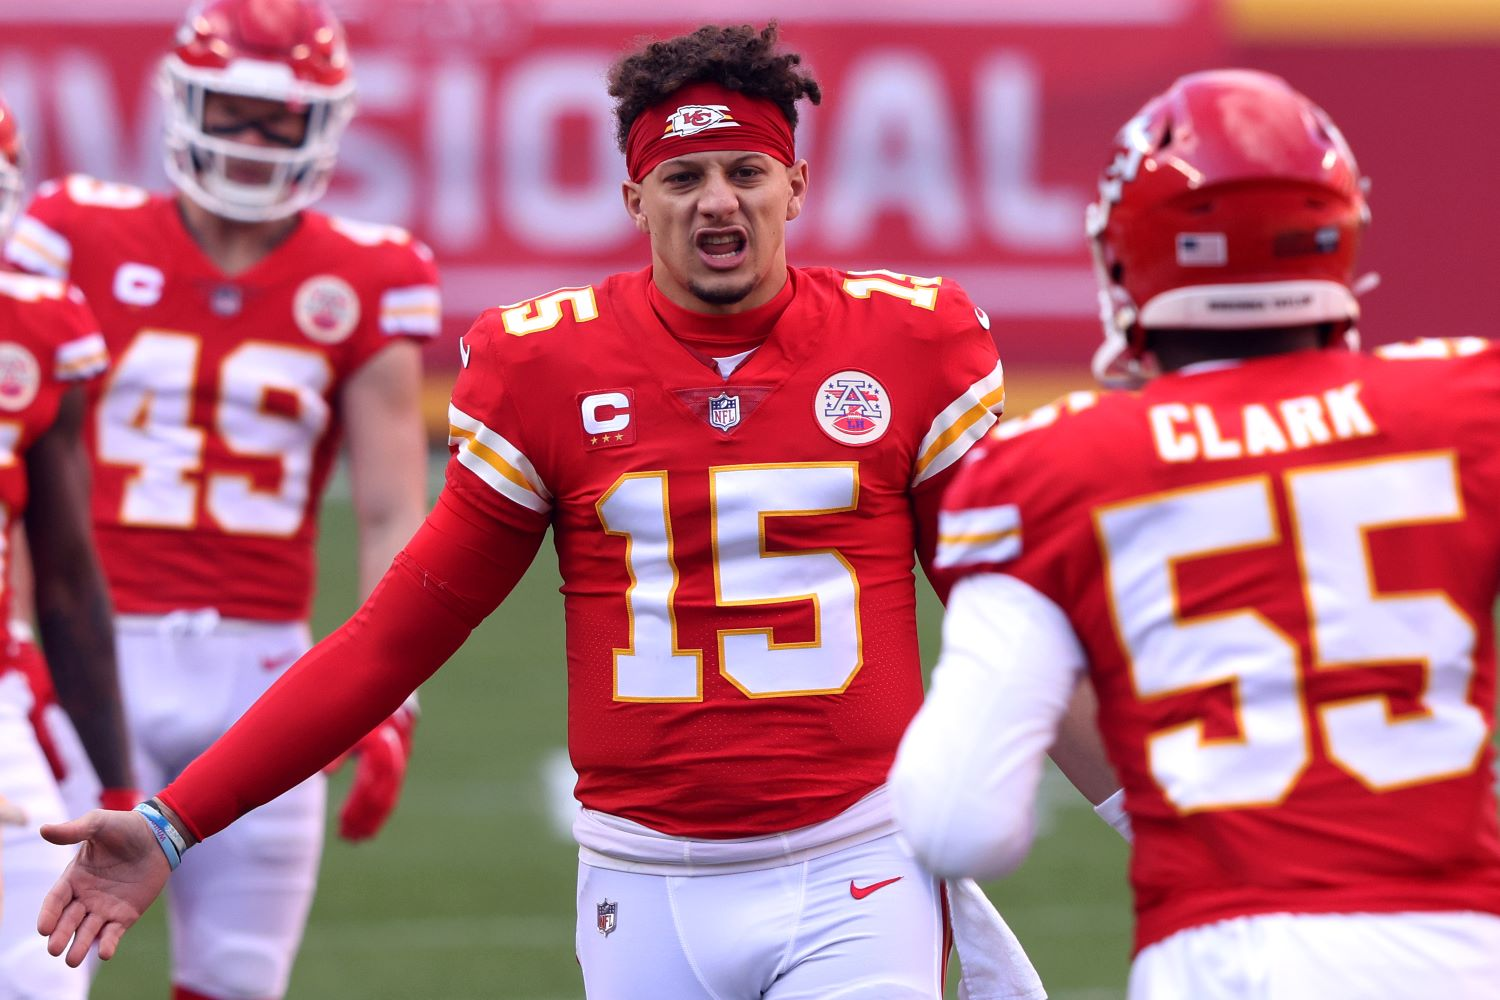 Patrick Mahomes just put all doubts to rest about his status for Sunday's AFC championship game showdown between the Chiefs and the Bills.